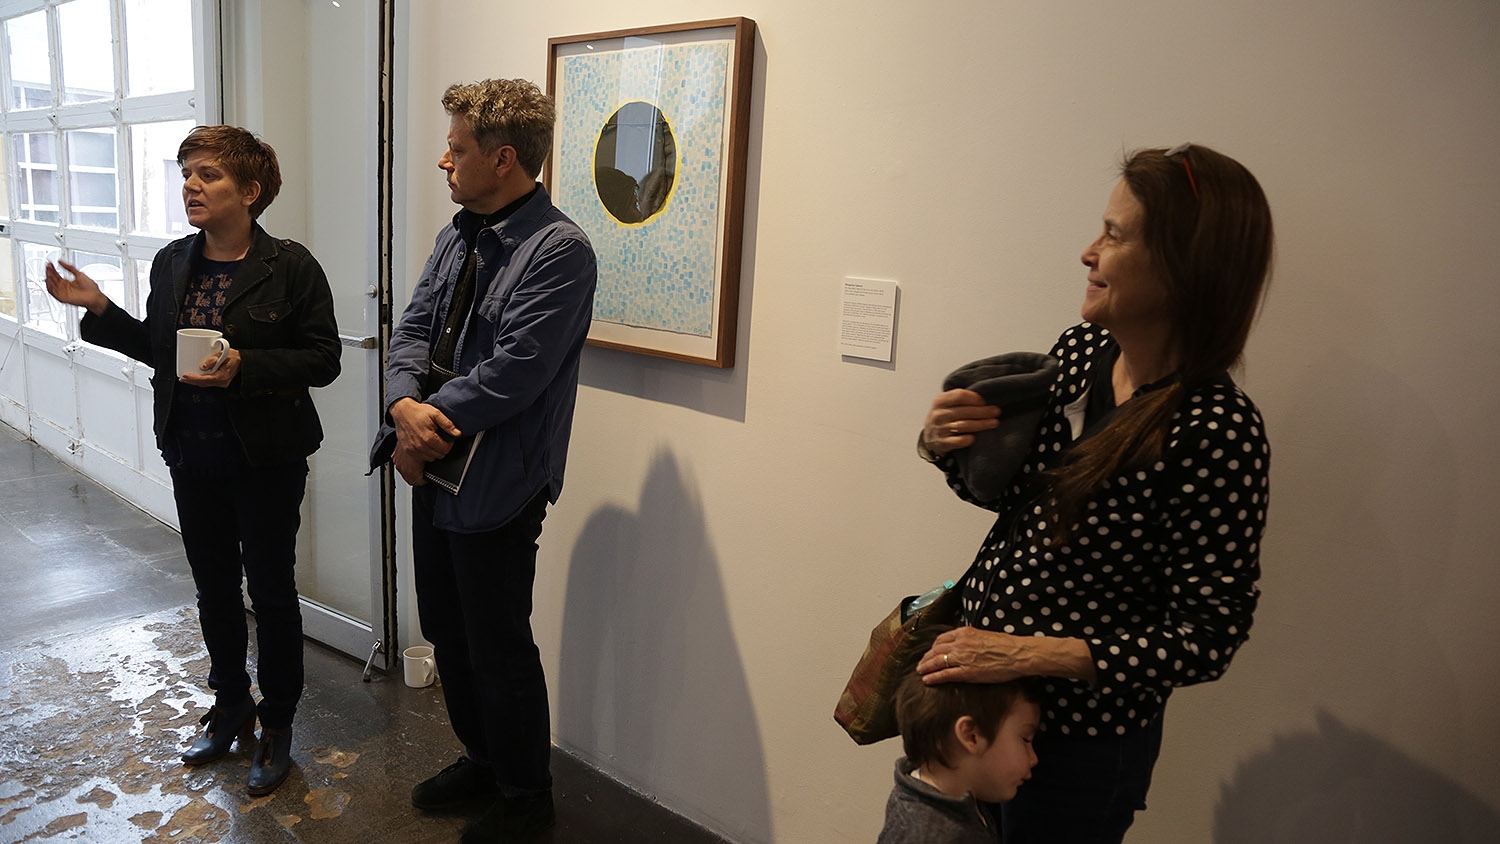 Jennifer Khoshbin (from left), Noah Khoshbin, Naomi Shihab Nye and her grandson Connor talk to the press at Artpace on Wednesday.